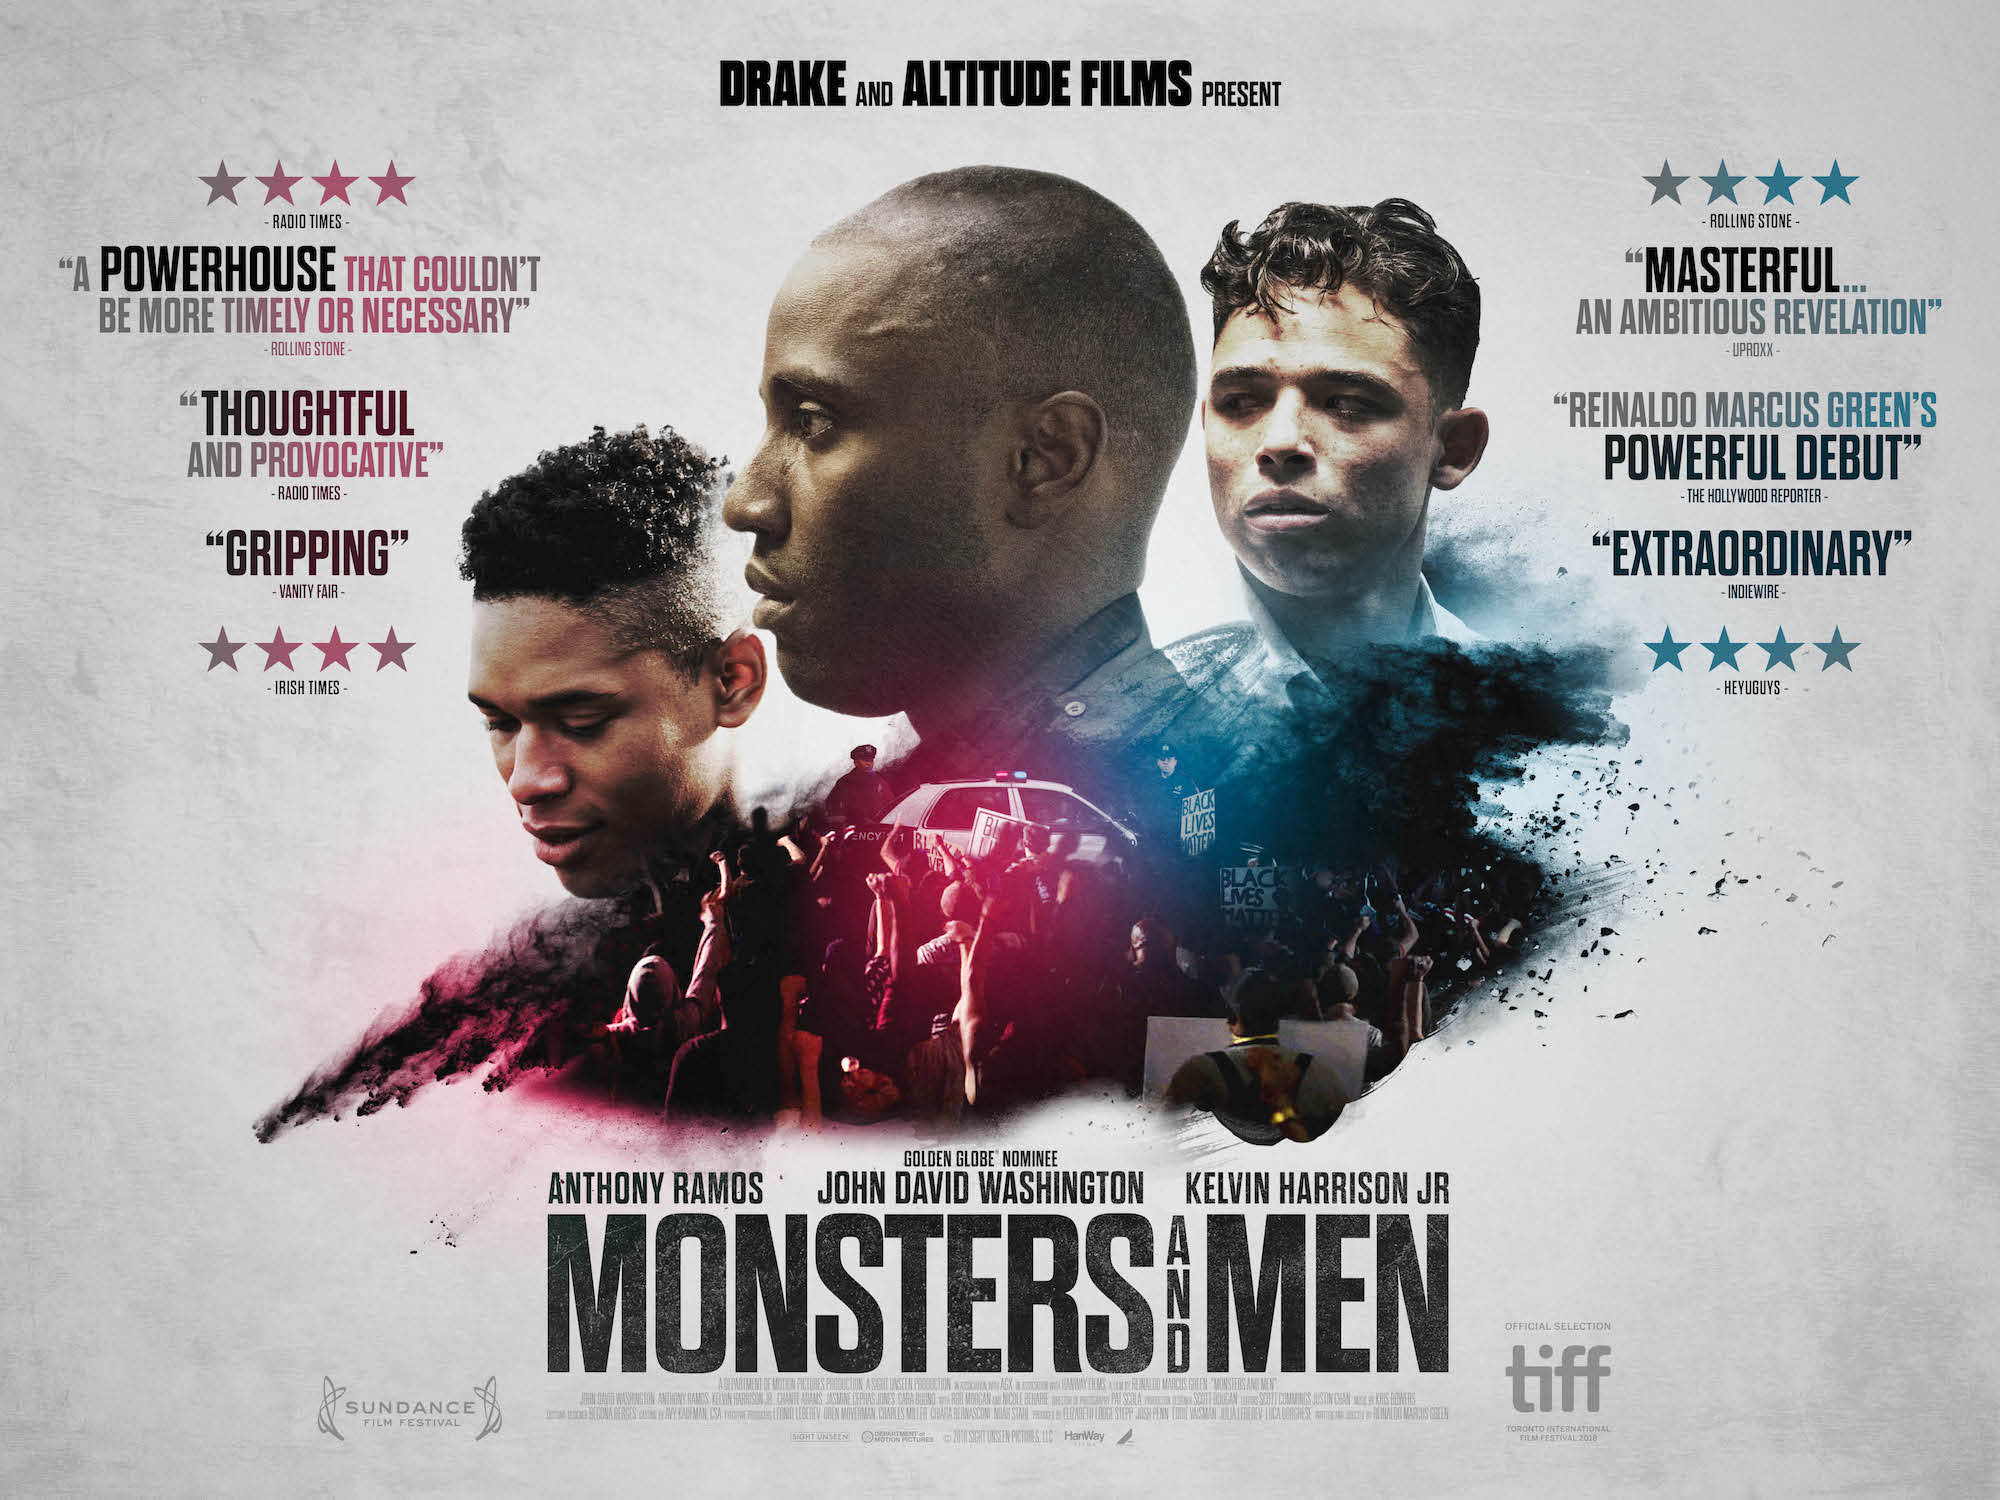 Monsters and Men film poster horizontal